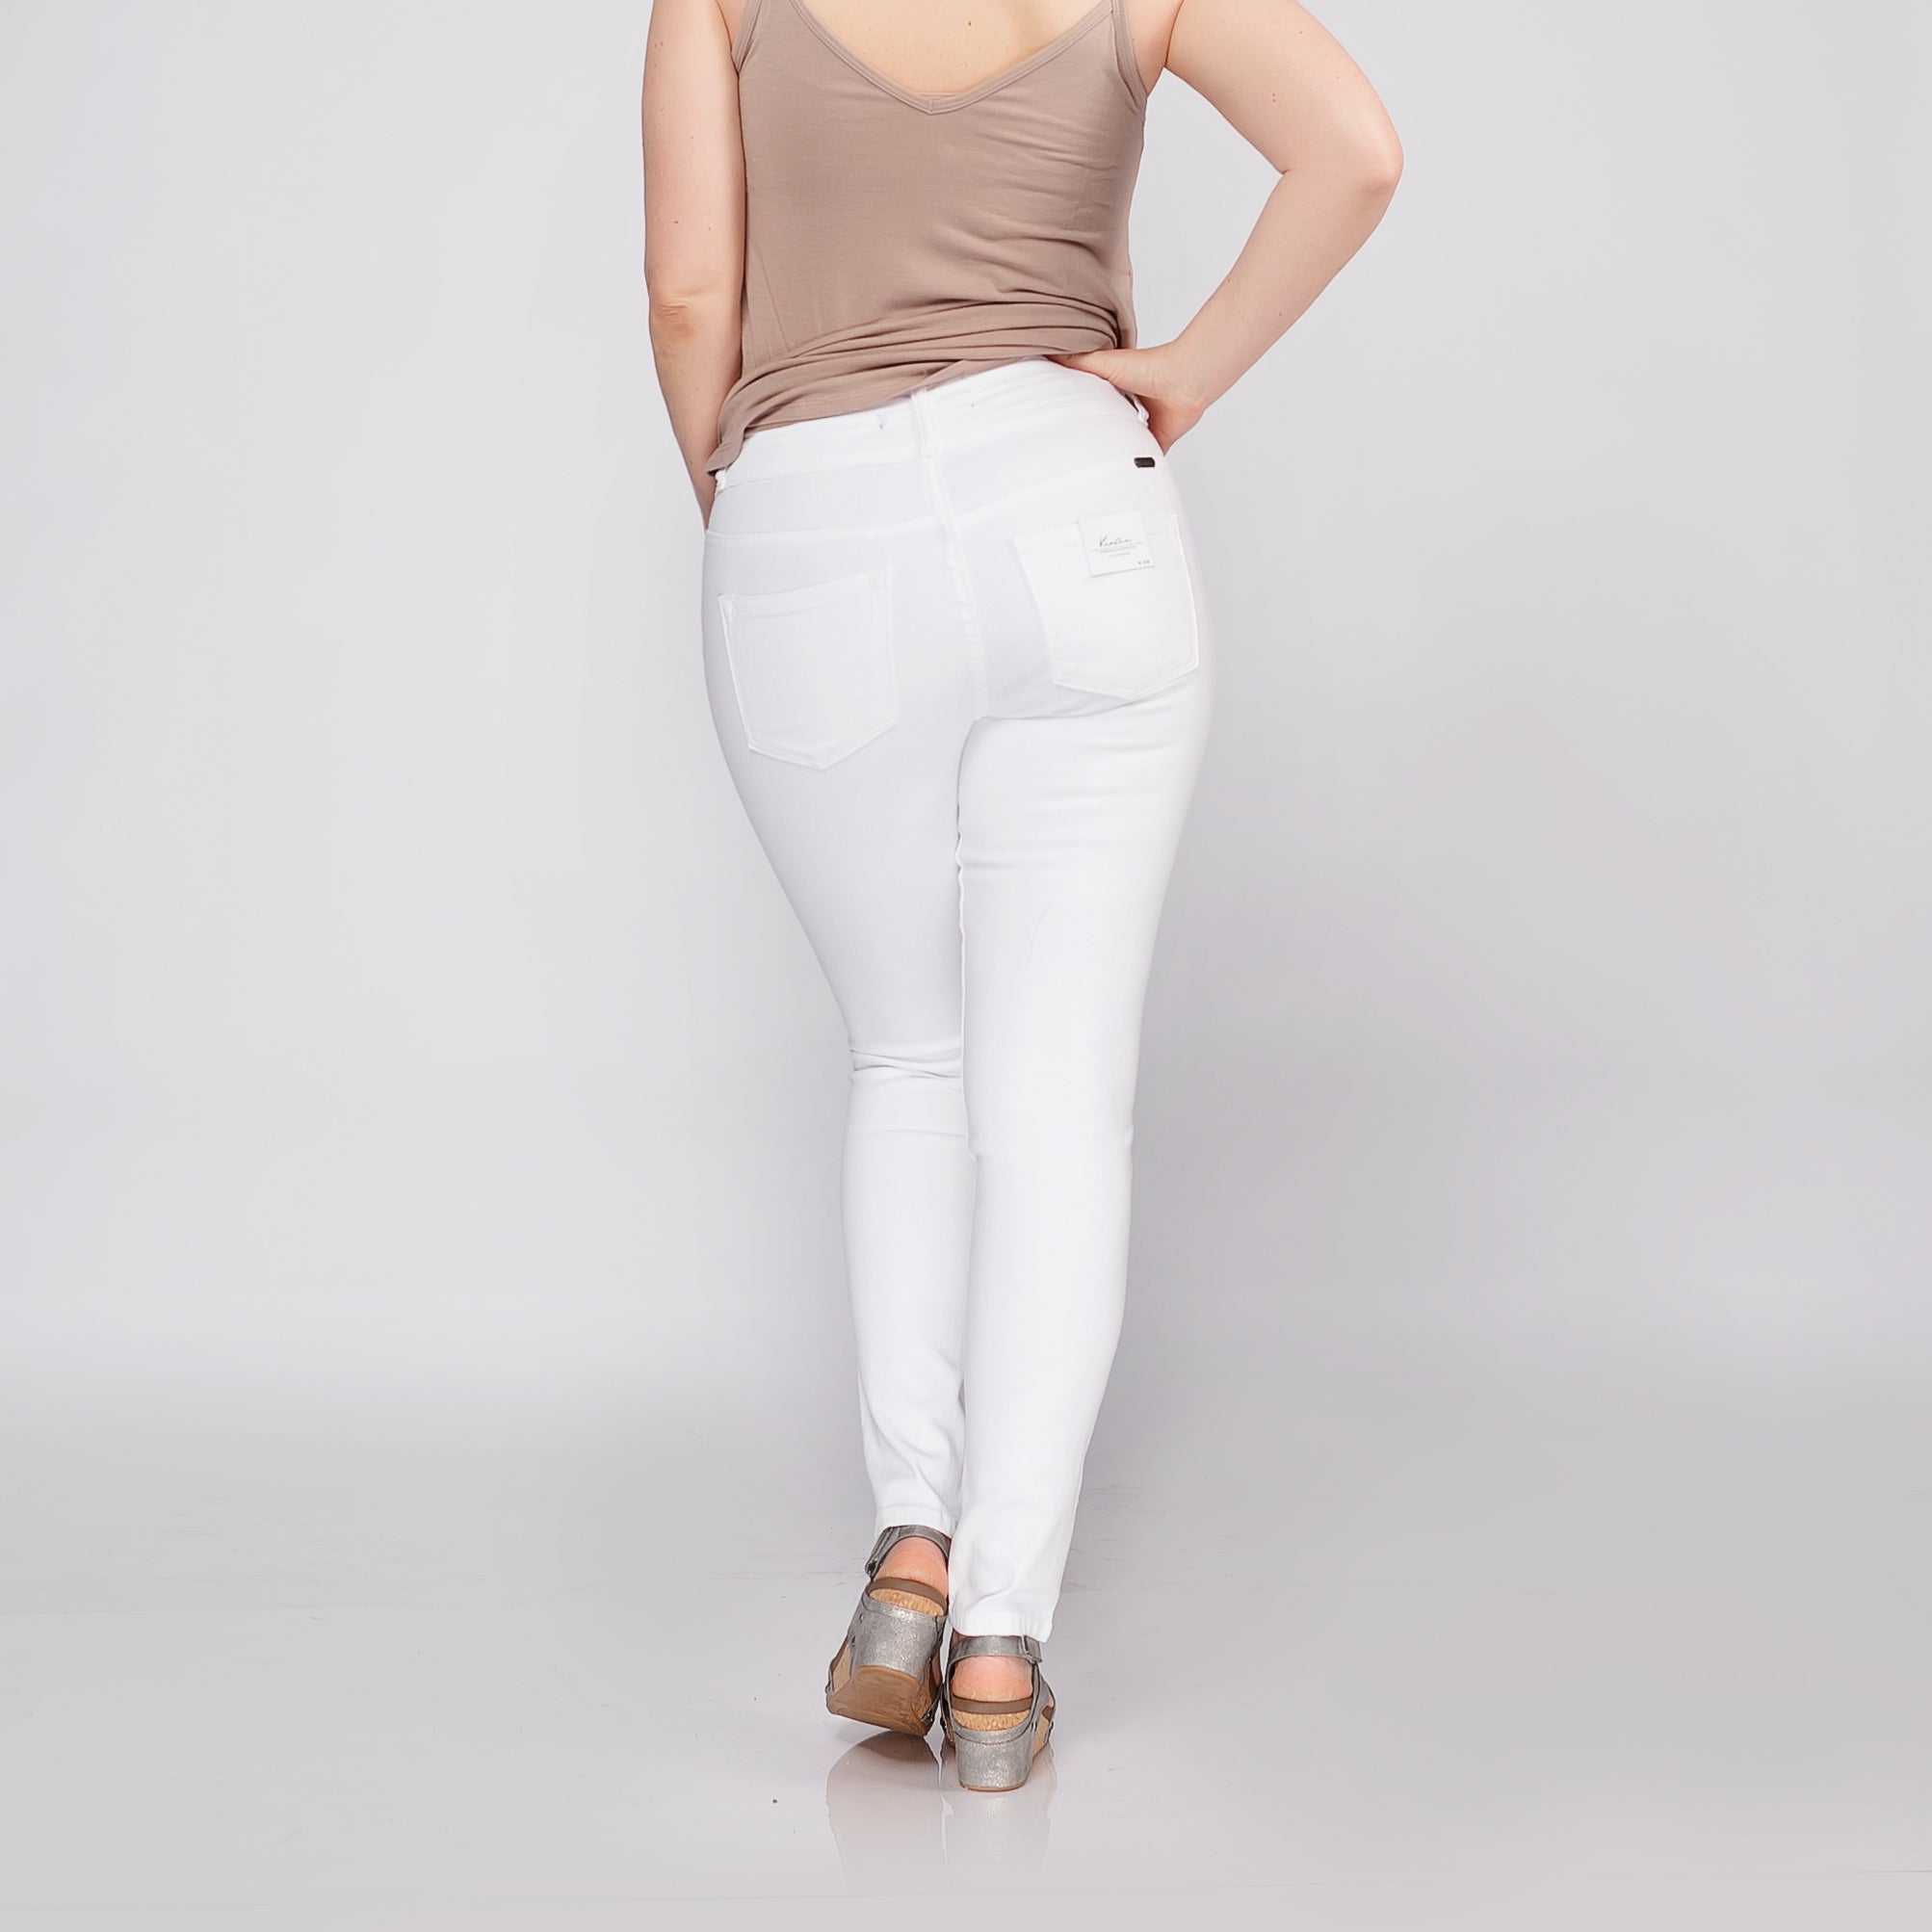 Kancan White High Rise Skinny Jeans *Final Sale*